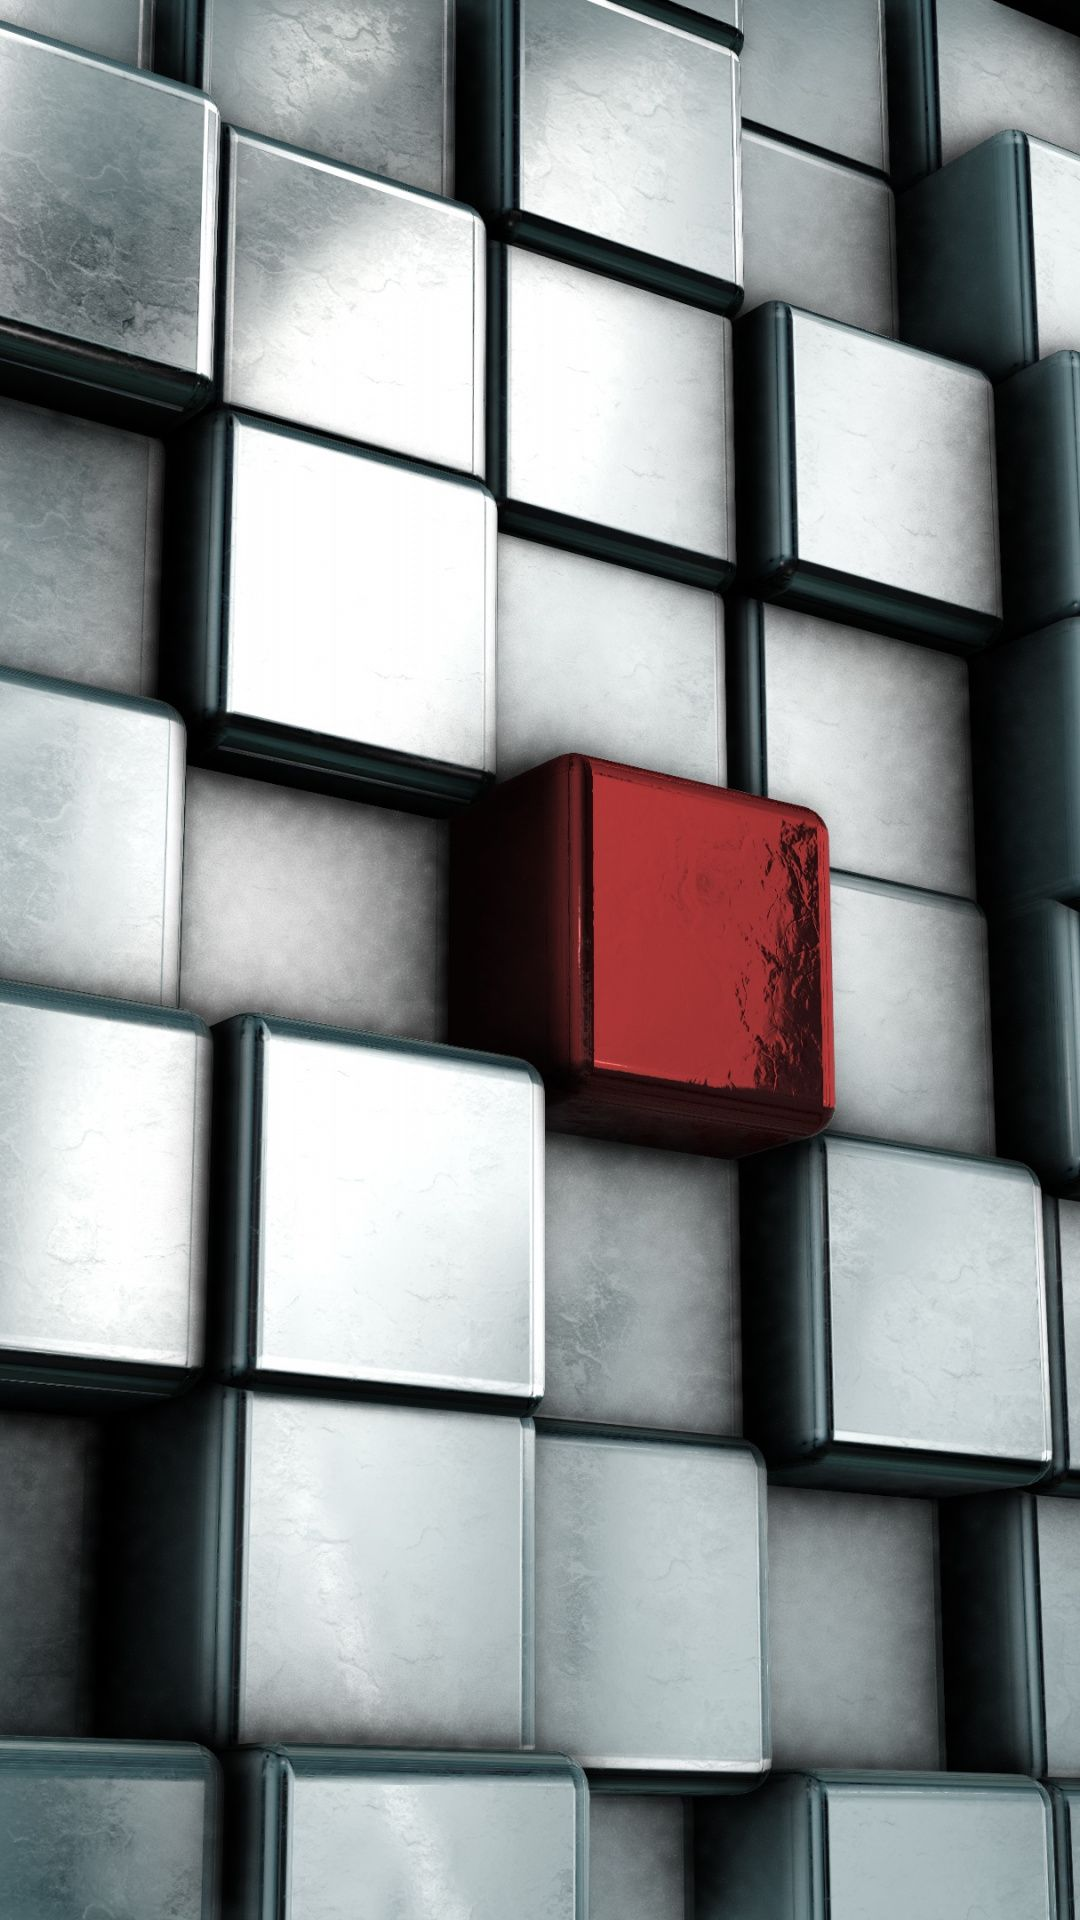 Cubes Silver Single Red Cube Abstract Wallpaper Abstract Wallpaper Abstract Cube